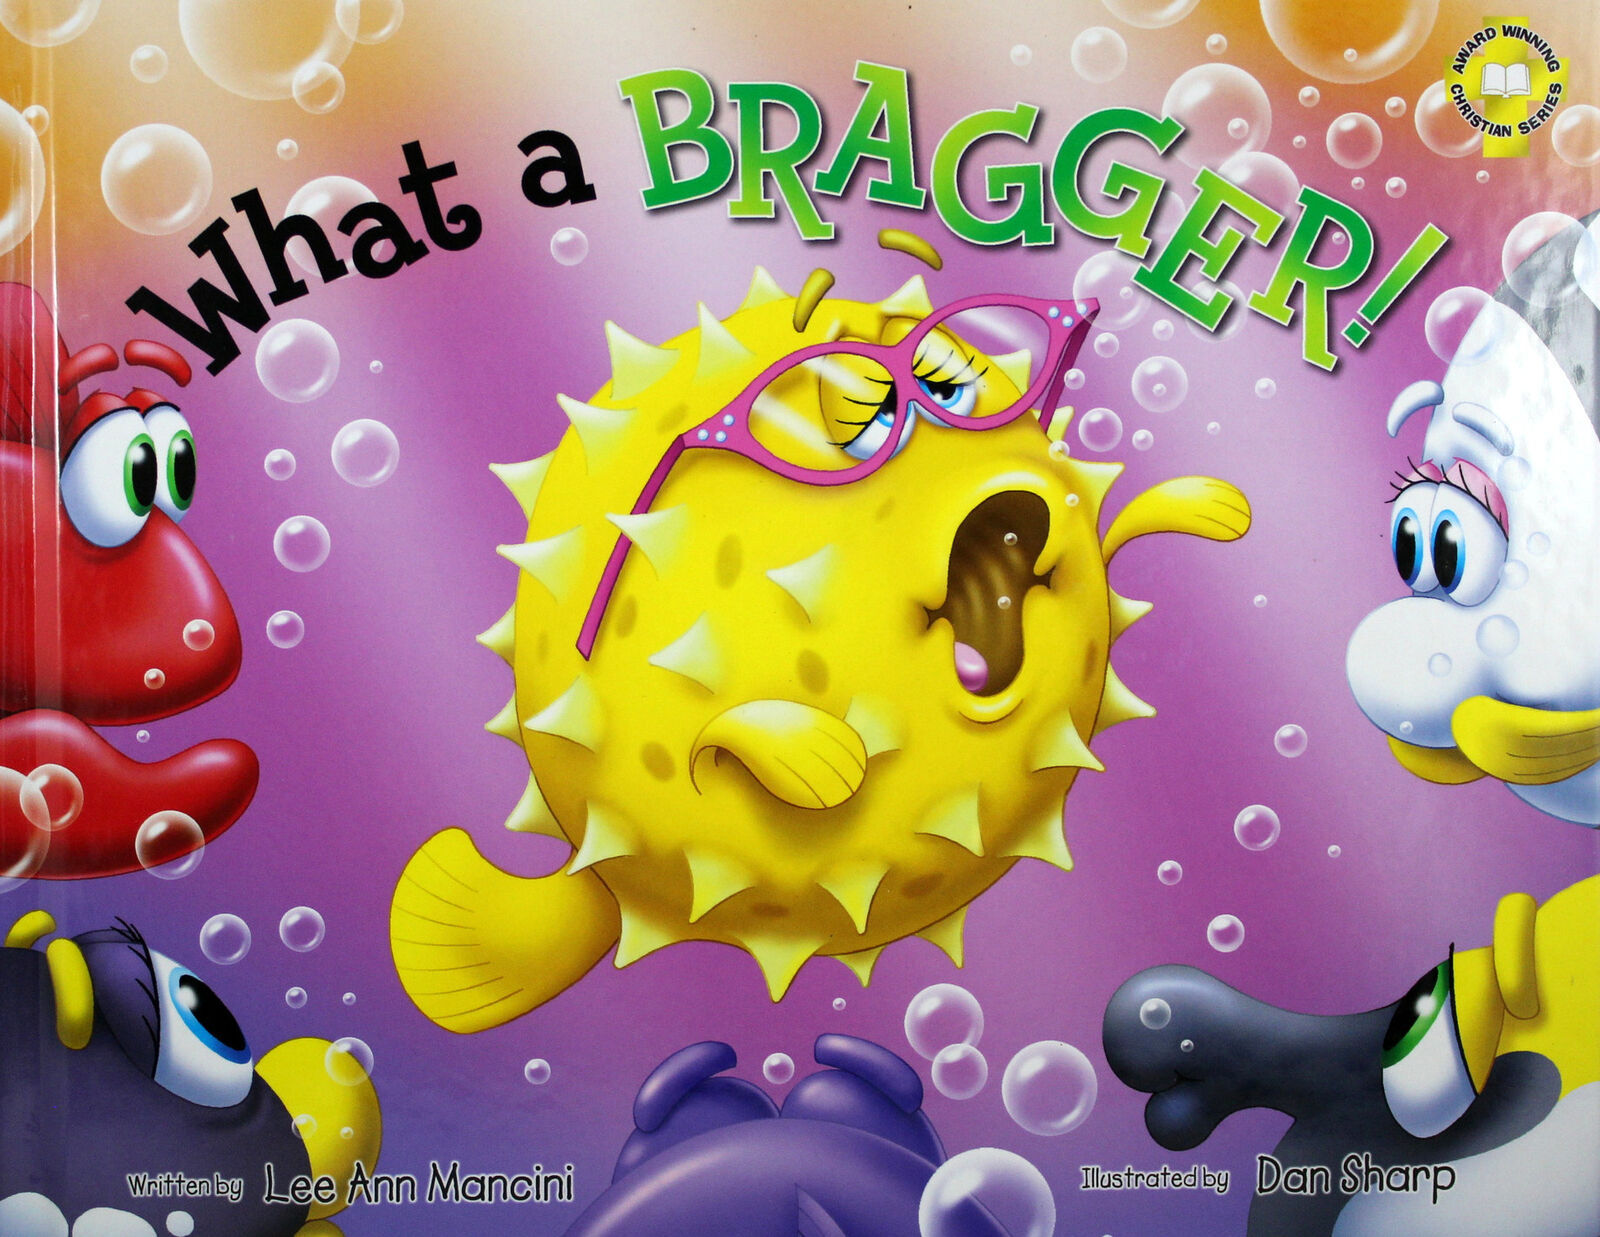 Primary image for What A Bragger Hardcover Book Adventures of the Sea Kids Award Winning Series